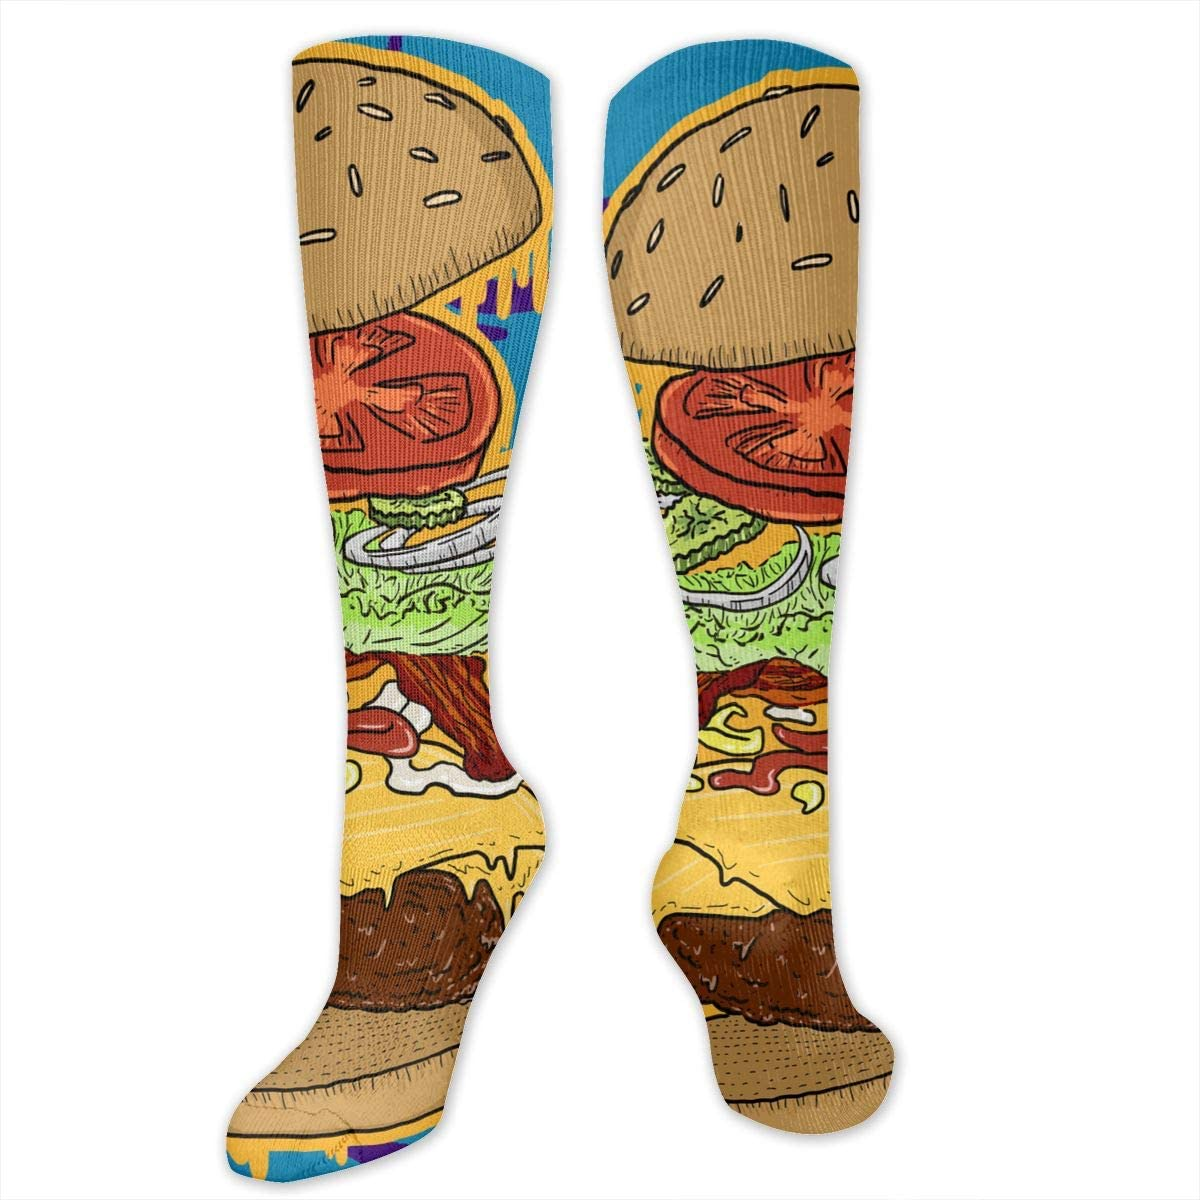 Men Multicolored Pattern Fashionable Fun Crew Cotton Socks Chanwazibibiliu Delicious Burger Mens Colorful Dress Socks Funky